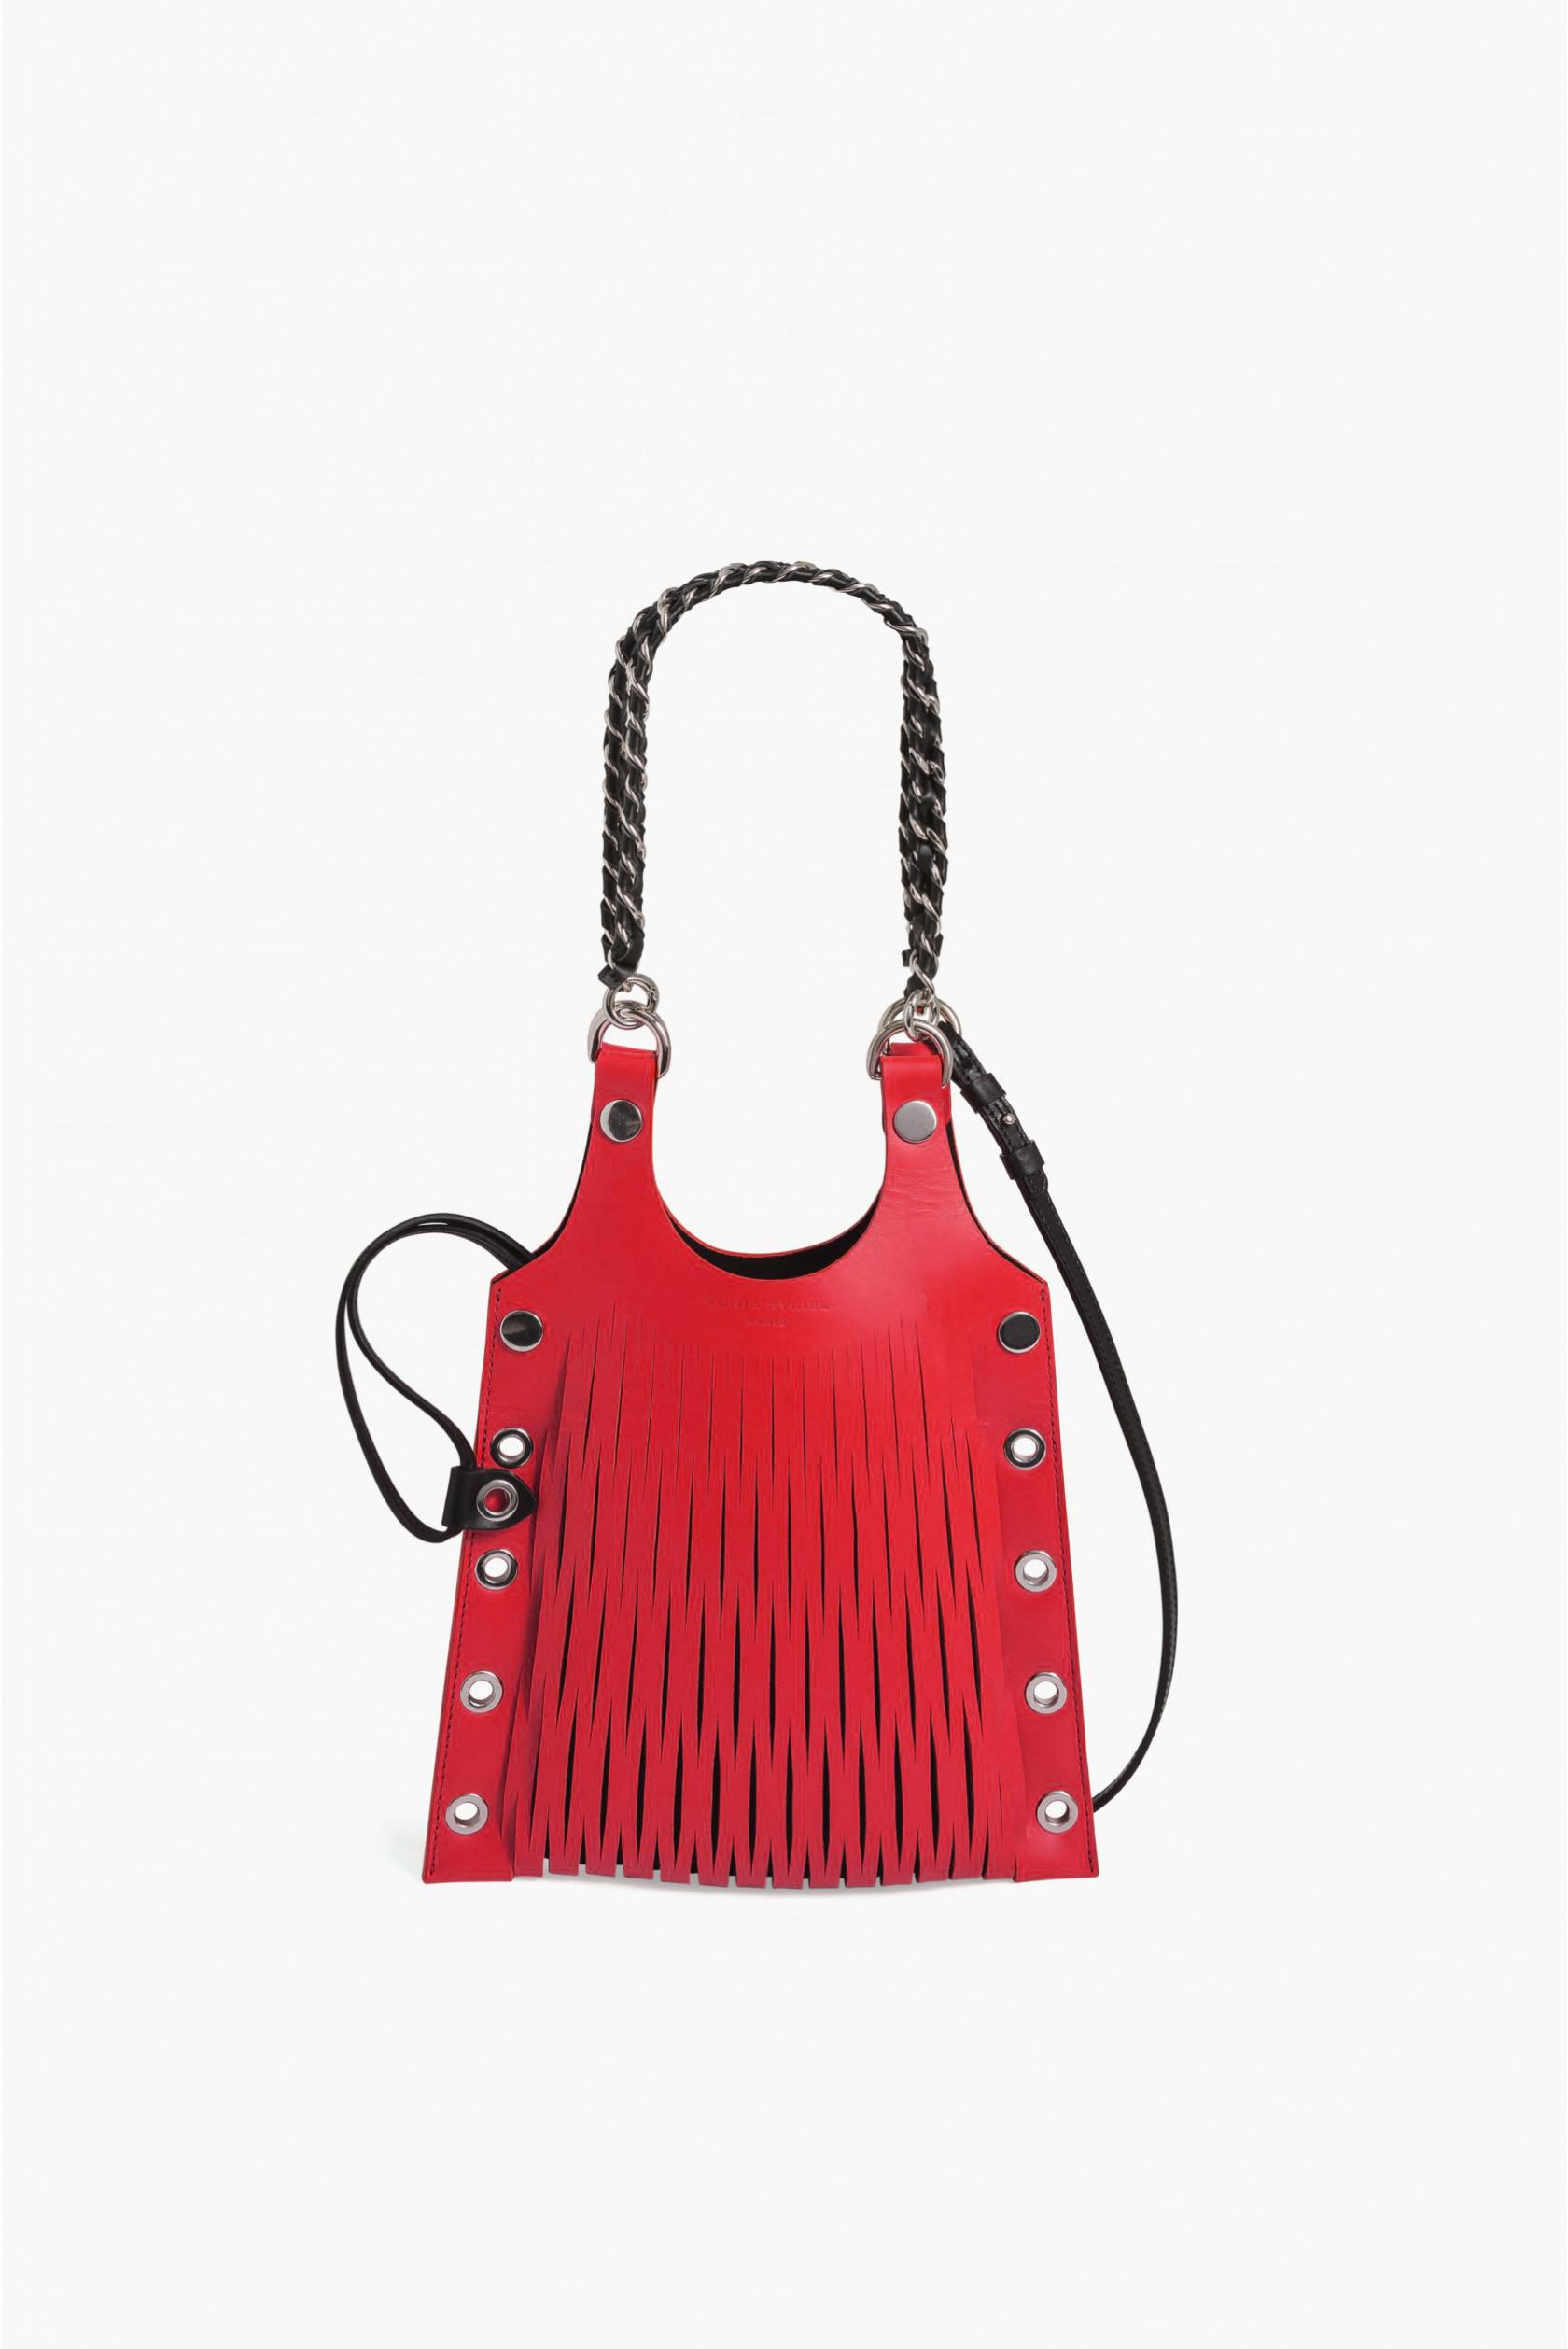 419a1db148 Sonia Rykiel. Women's Red Le Baltard Calfskin Mini Tote. $630 From Orchard  Mile